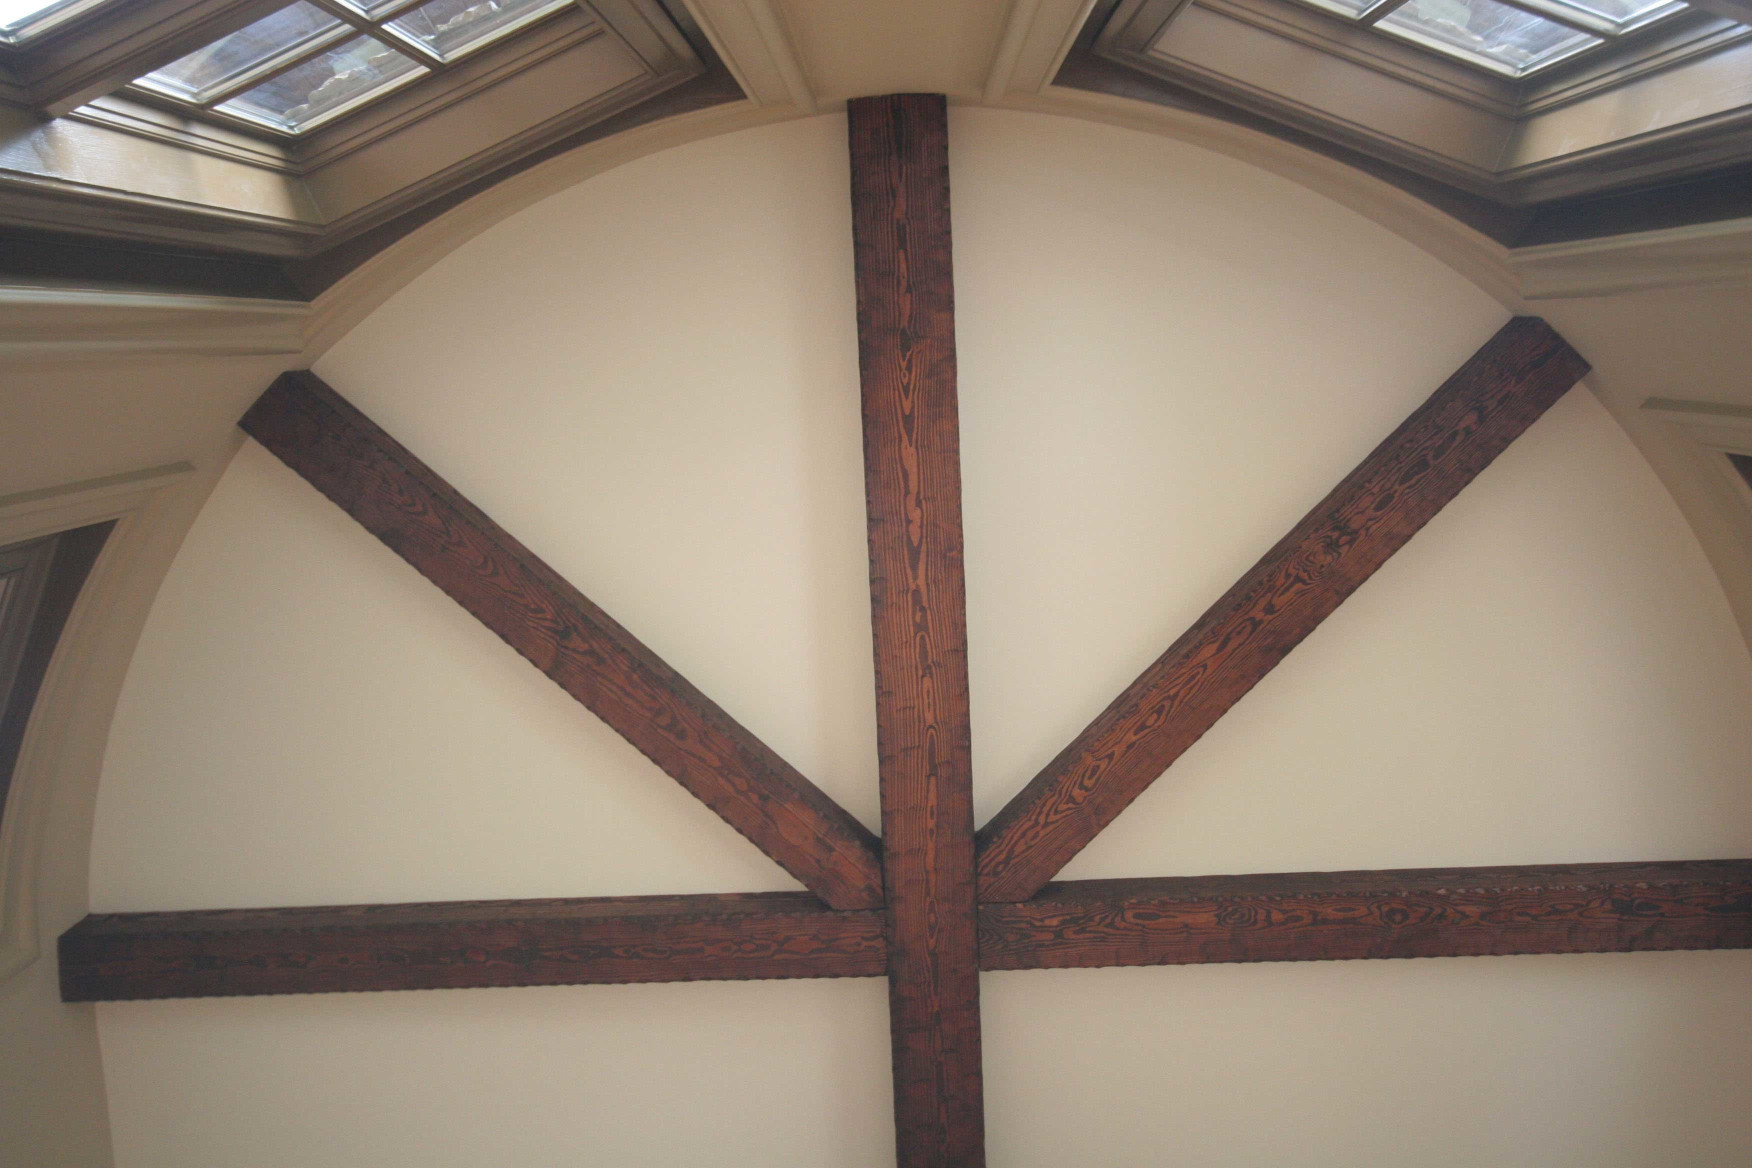 These wood box beams are an excellent custom design for this ceiling.